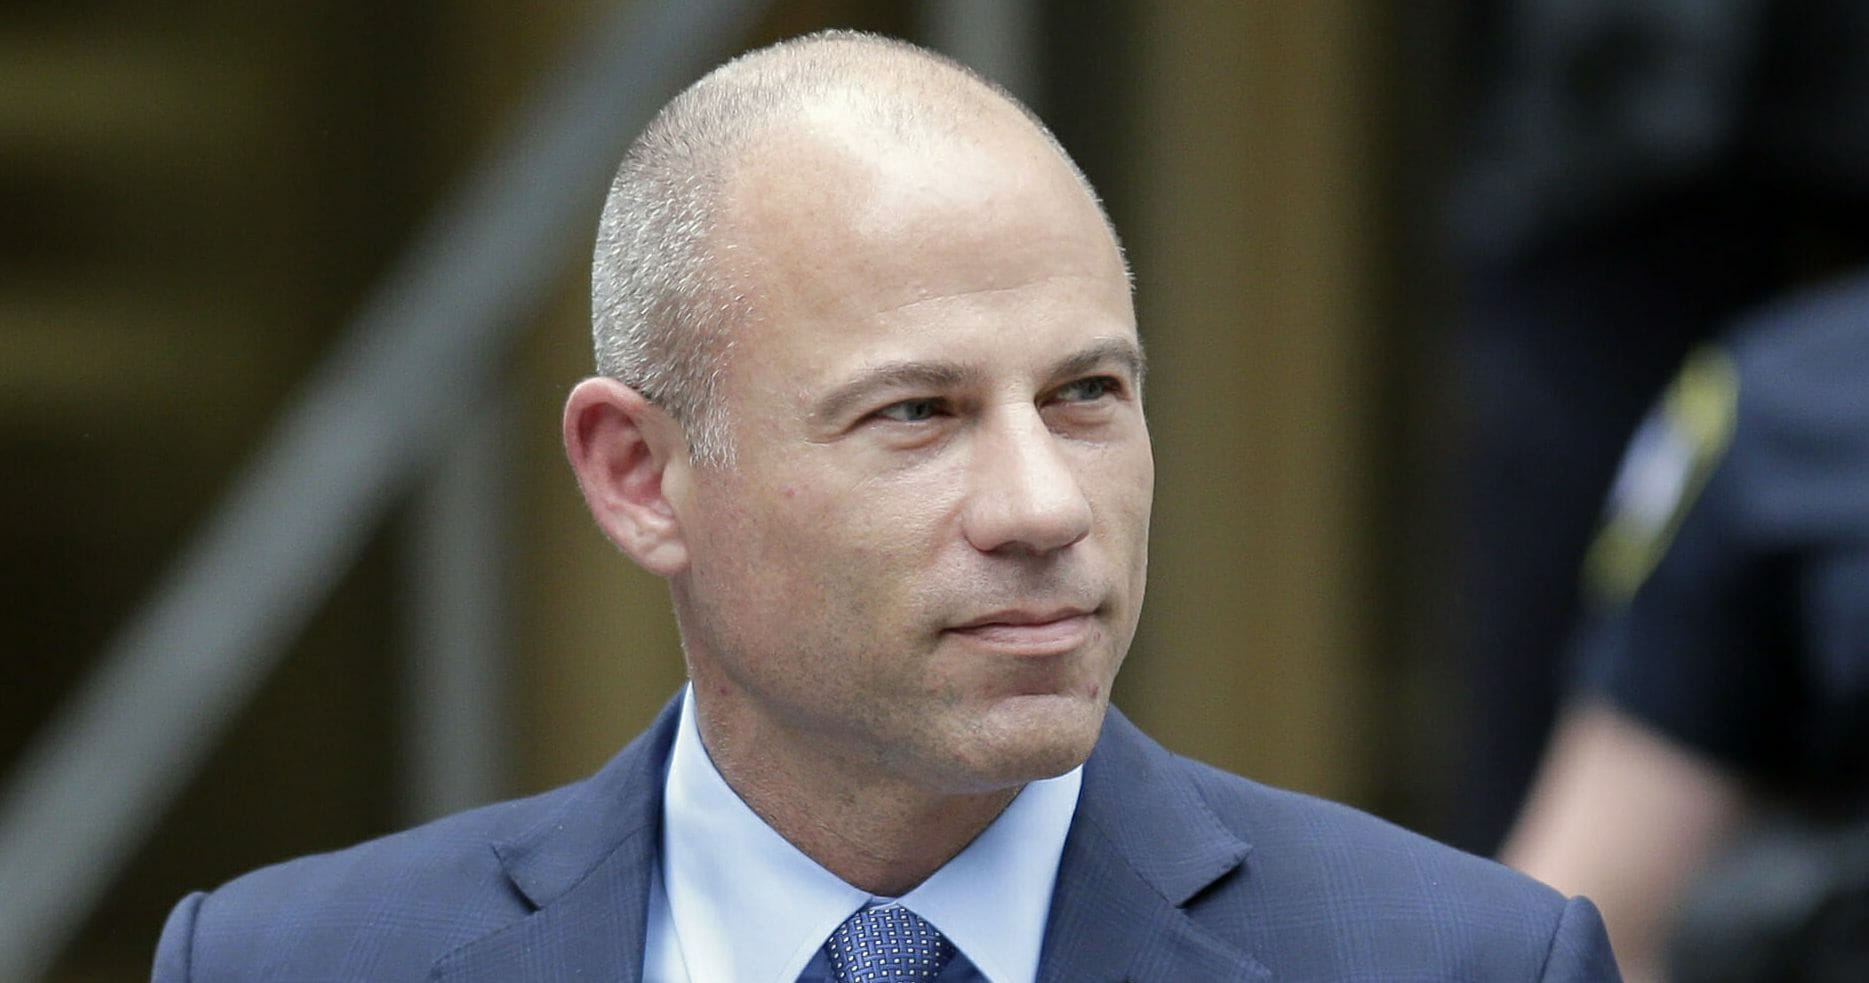 Michael Avenatti leaves a courthouse in New York on May 28, 2019.